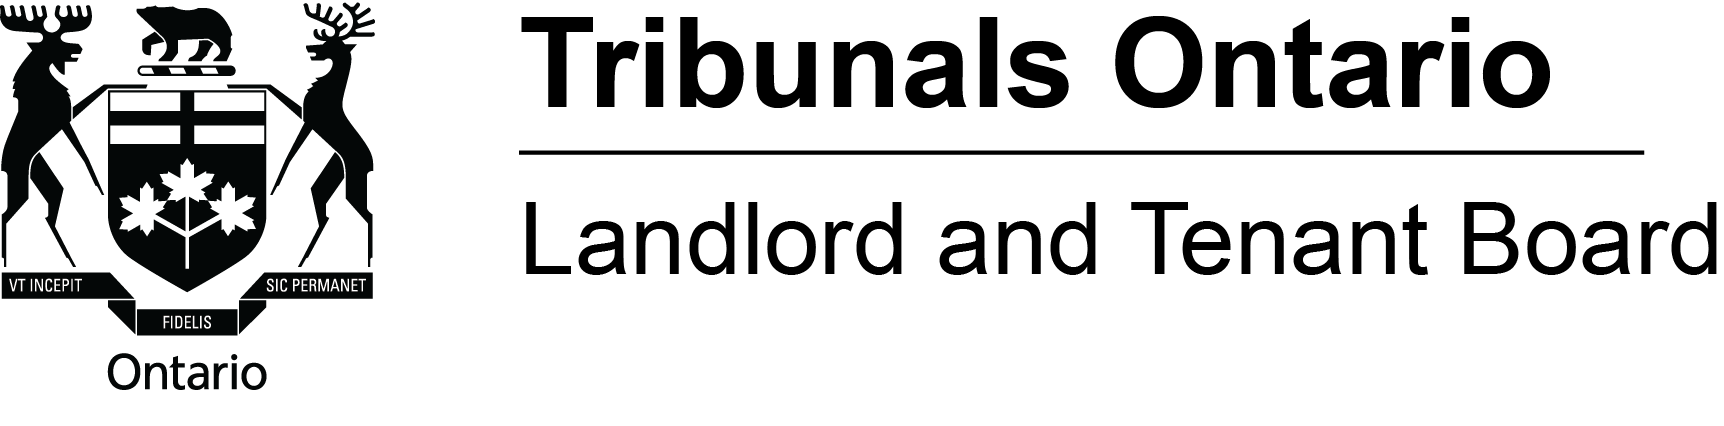 Eviction for Failure to Pay Rent Interpretation Guideline 11